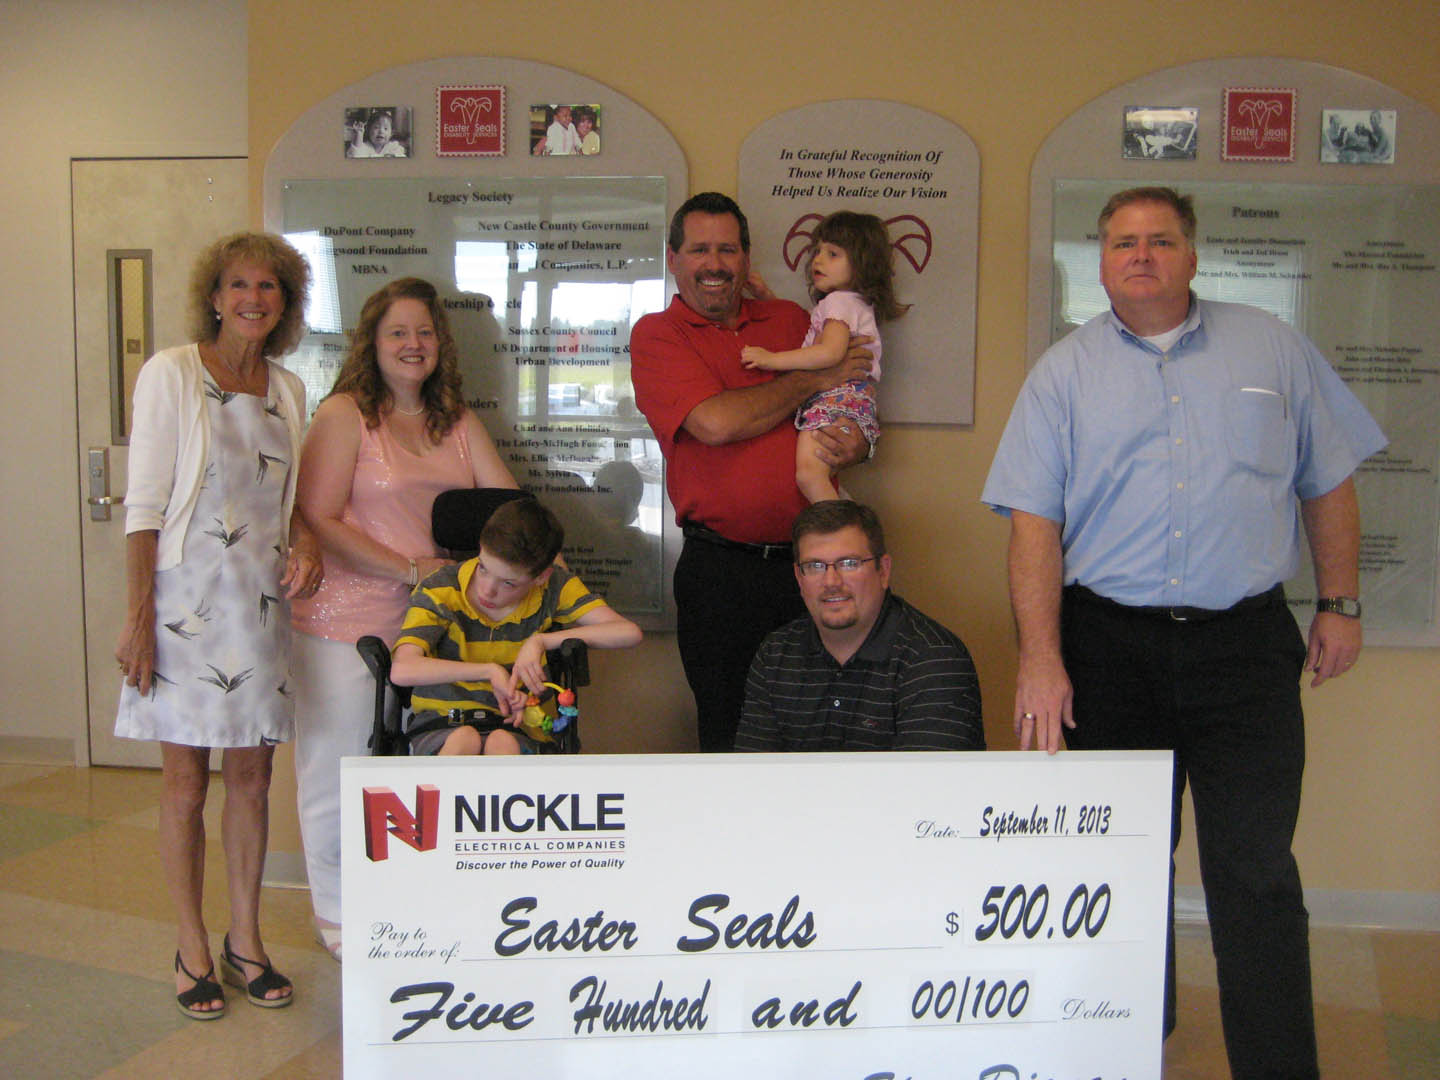 Nickle presents check to Easter Seals